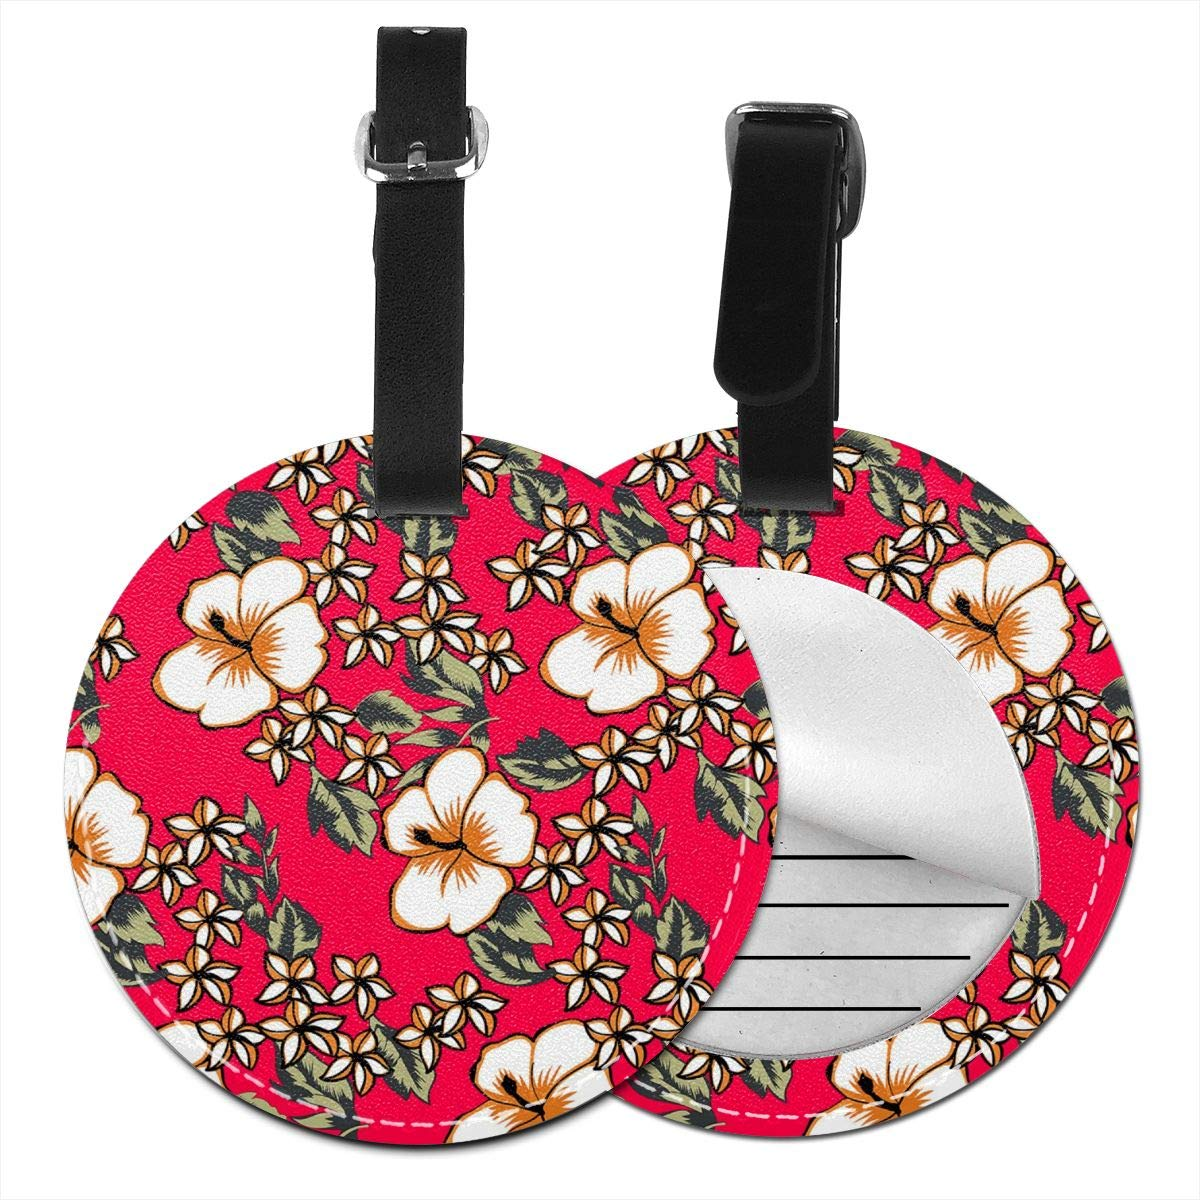 RITGOWWV PU Leather Luggage Tags 3D Print Red Pink Flower Suitcase Labels Bag Travel Accessories